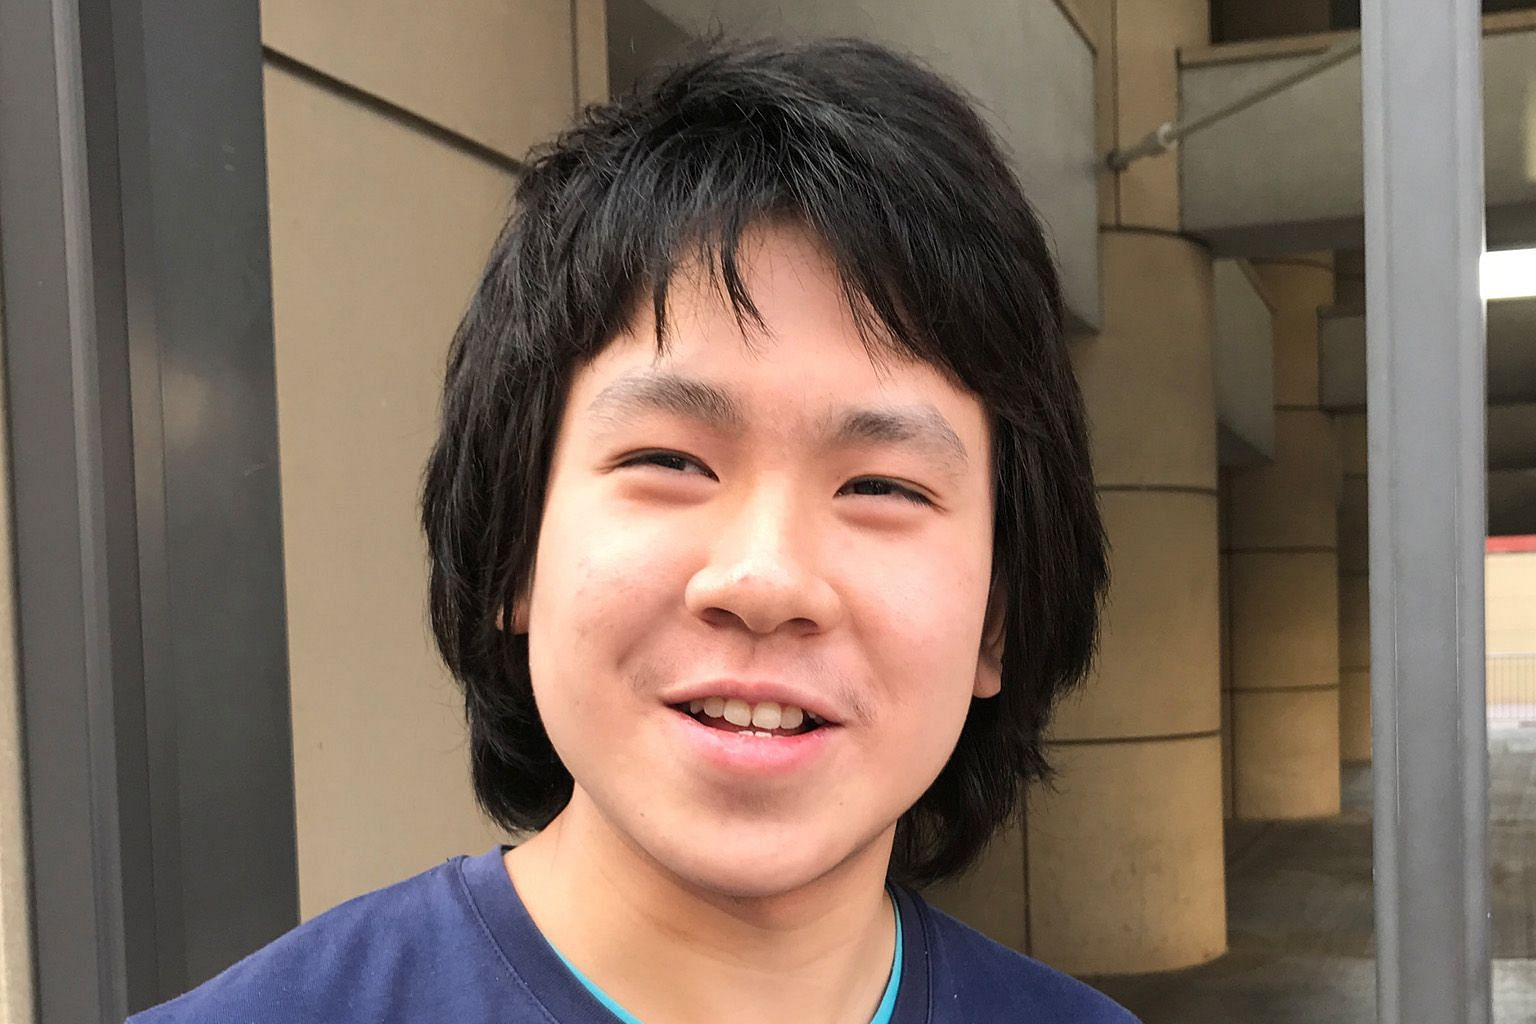 Blogger Amos Yee, who left Singapore for Chicago last December, said he wanted to make more videos, expanding his horizons to include the US.